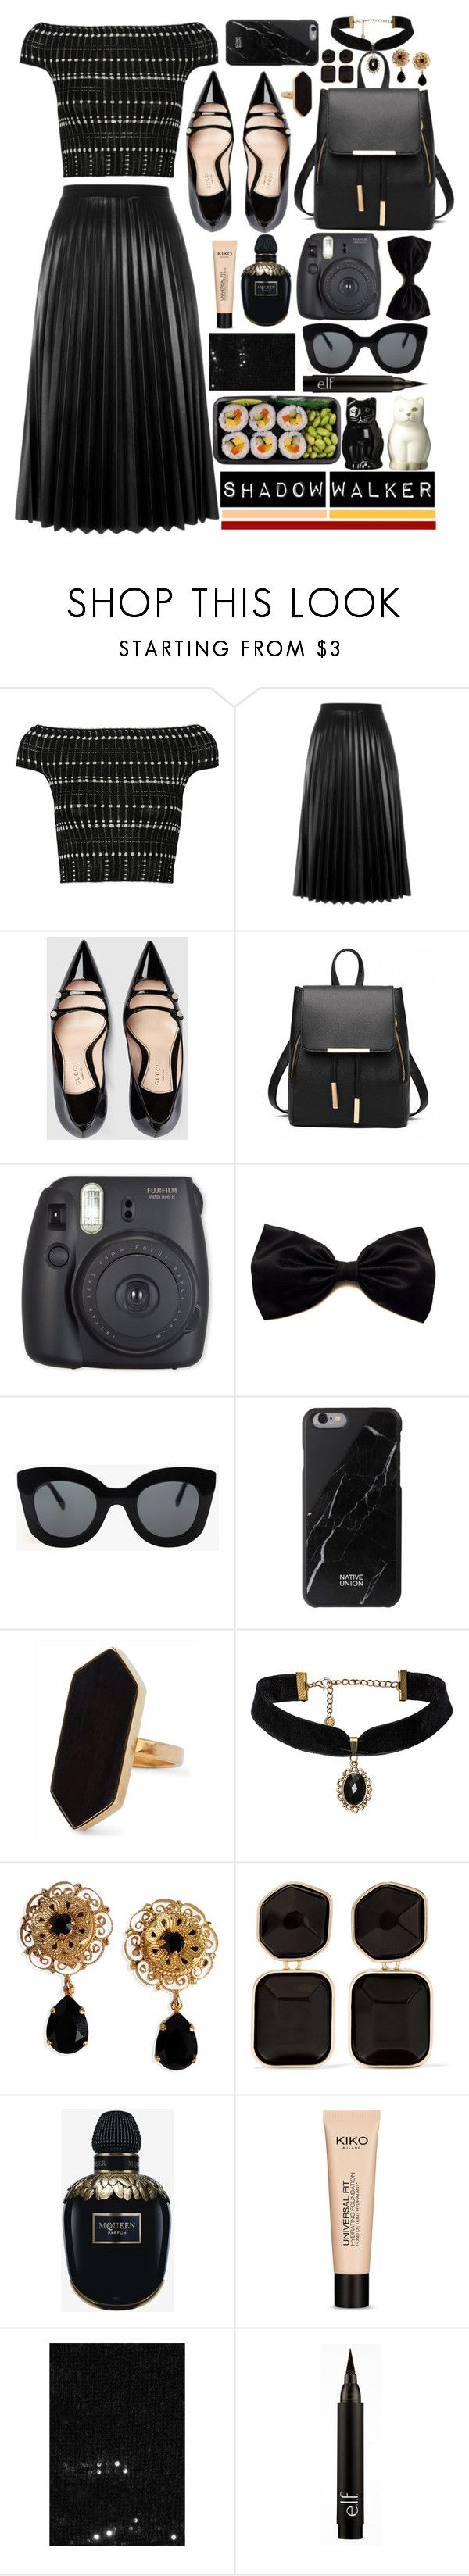 """""""Shadow Walker"""" by atarituesday ❤ liked on Polyvore featuring Alexander McQueen, Aviù, Gucci, CÉLINE, Native Union, Jaeger, Dolce&Gabbana, Kenneth Jay Lane, Universal and Yves Saint Laurent"""